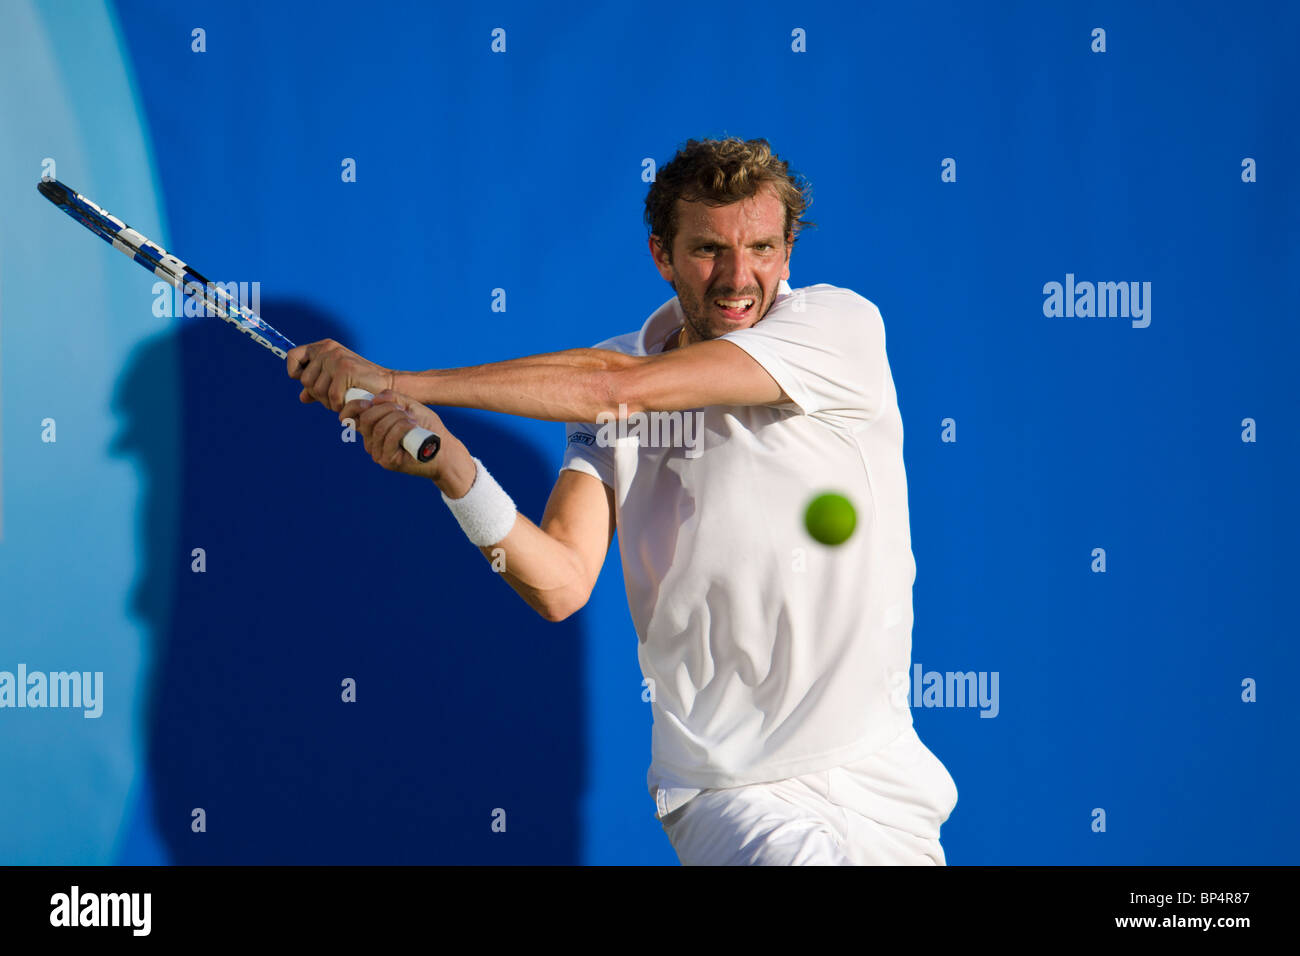 J Benneteau in action against Guillermo Garcia-Lopez of Spain. - Stock Image